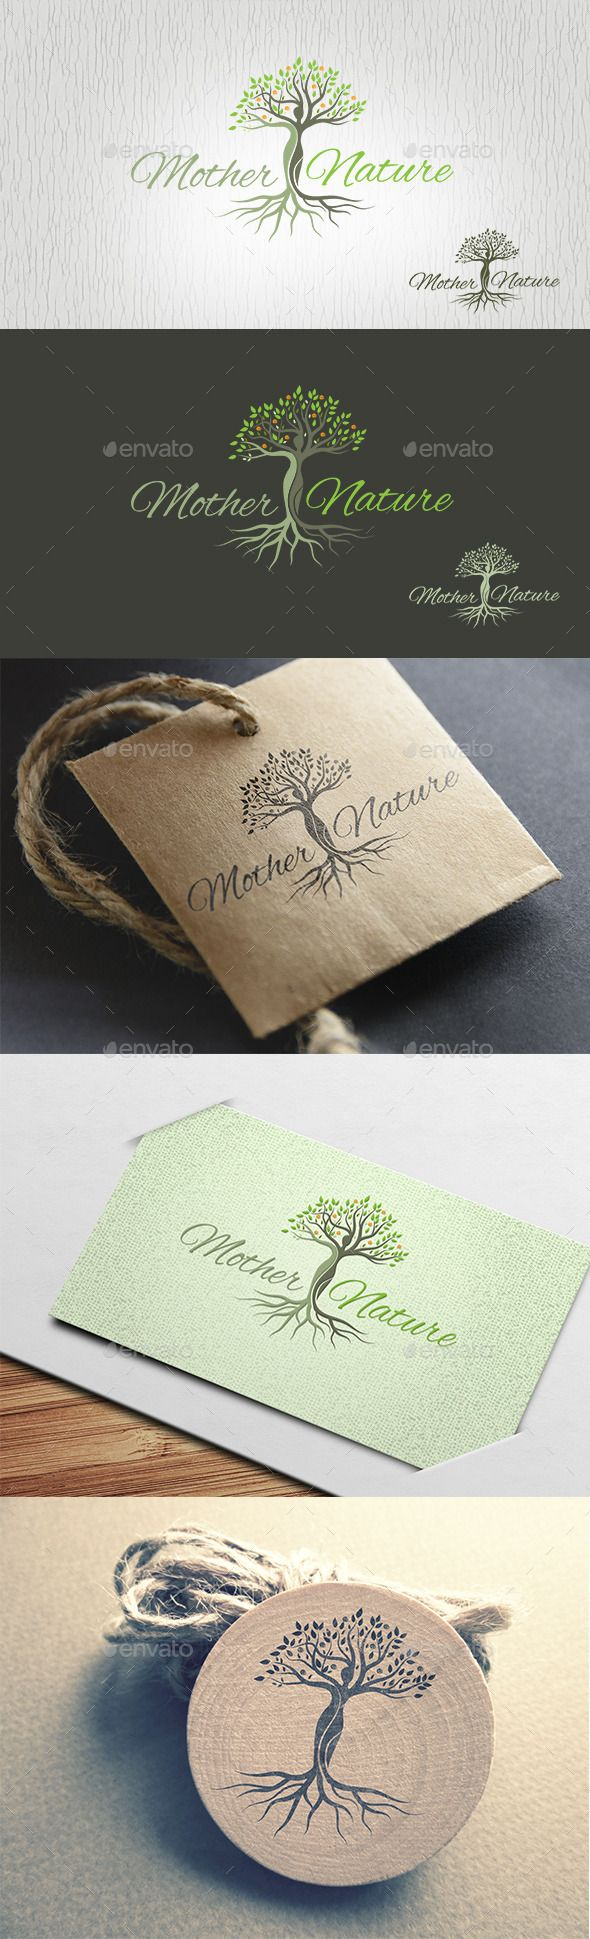 Mother Nature Logo — Vector EPS #landscape #food • Available here → https://graphicriver.net/item/mother-nature-logo/13400275?ref=pxcr